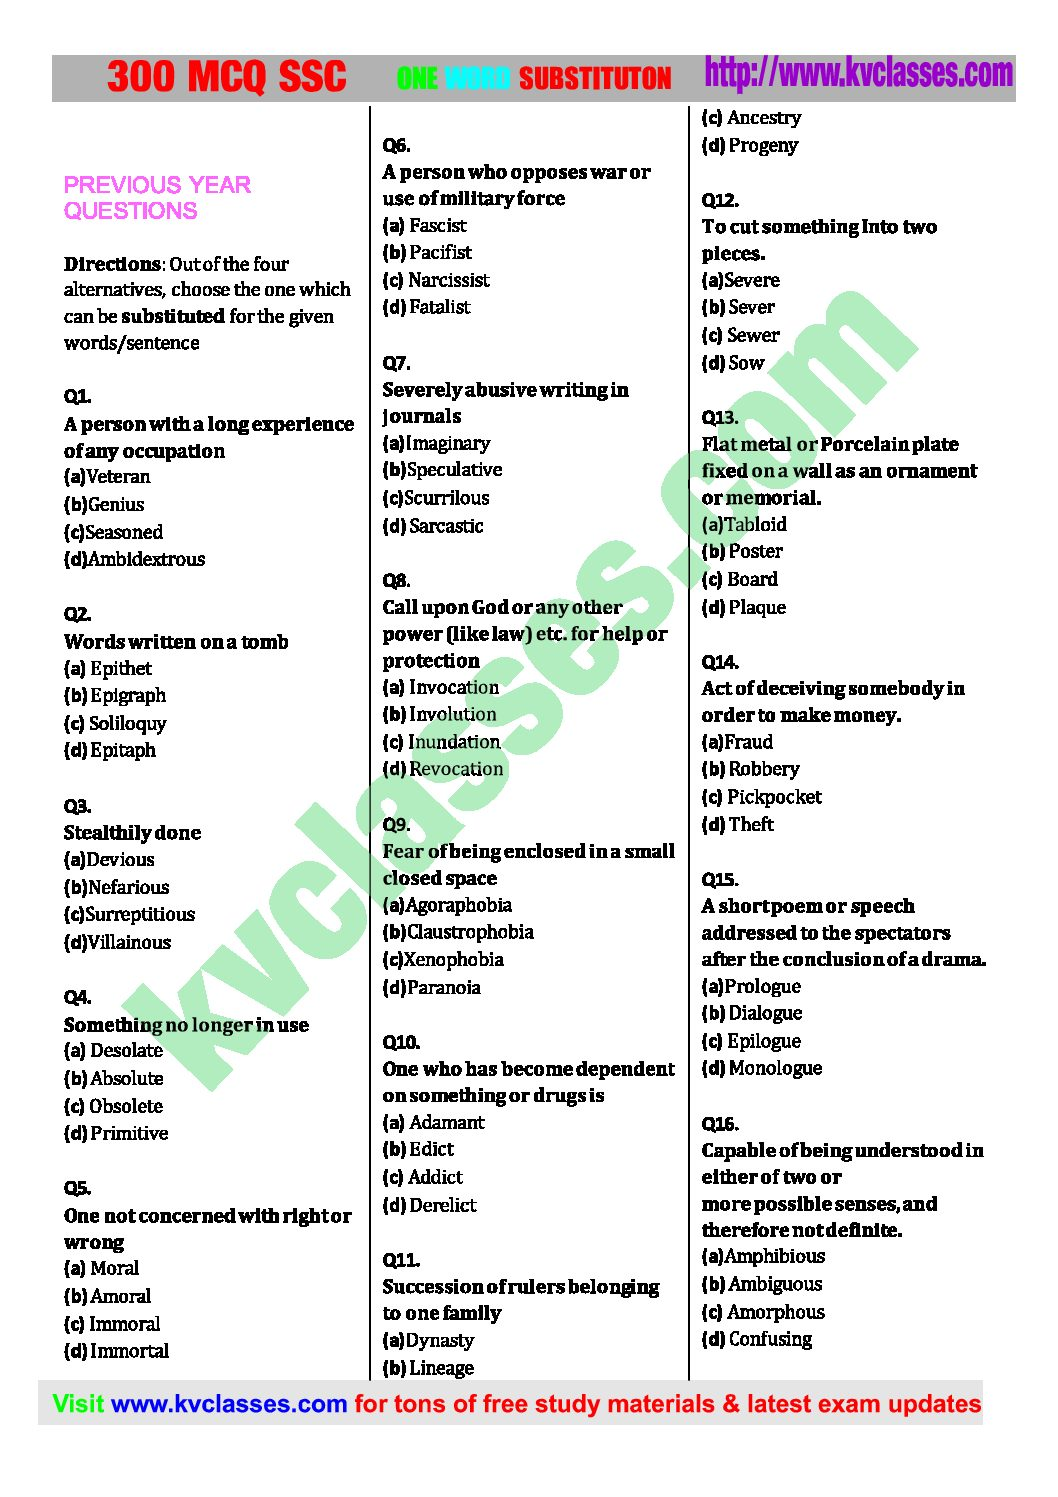 300 SSC MCQ PREVIOUS ONE WORD SUBSTITUTION